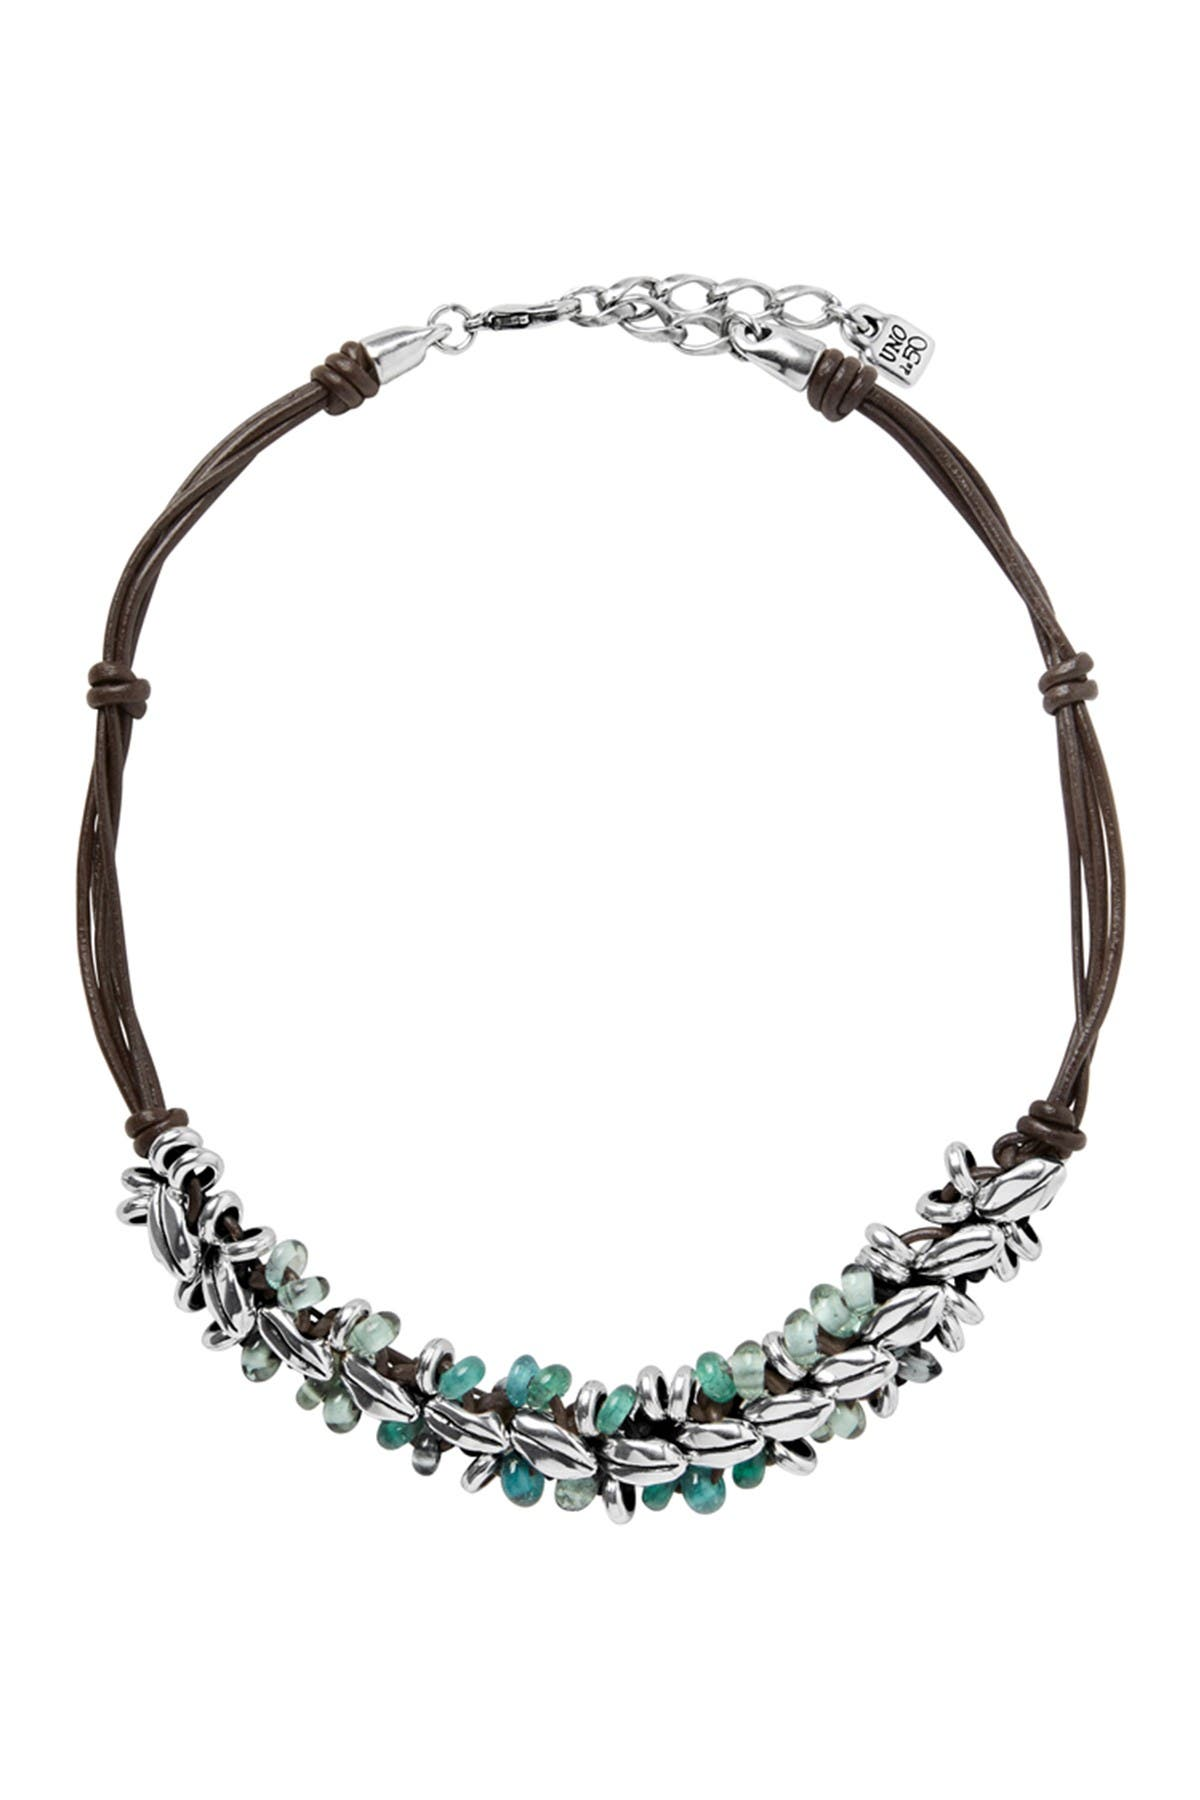 Image of Uno De 50 La Siembra Sowing Beaded Leather Necklace